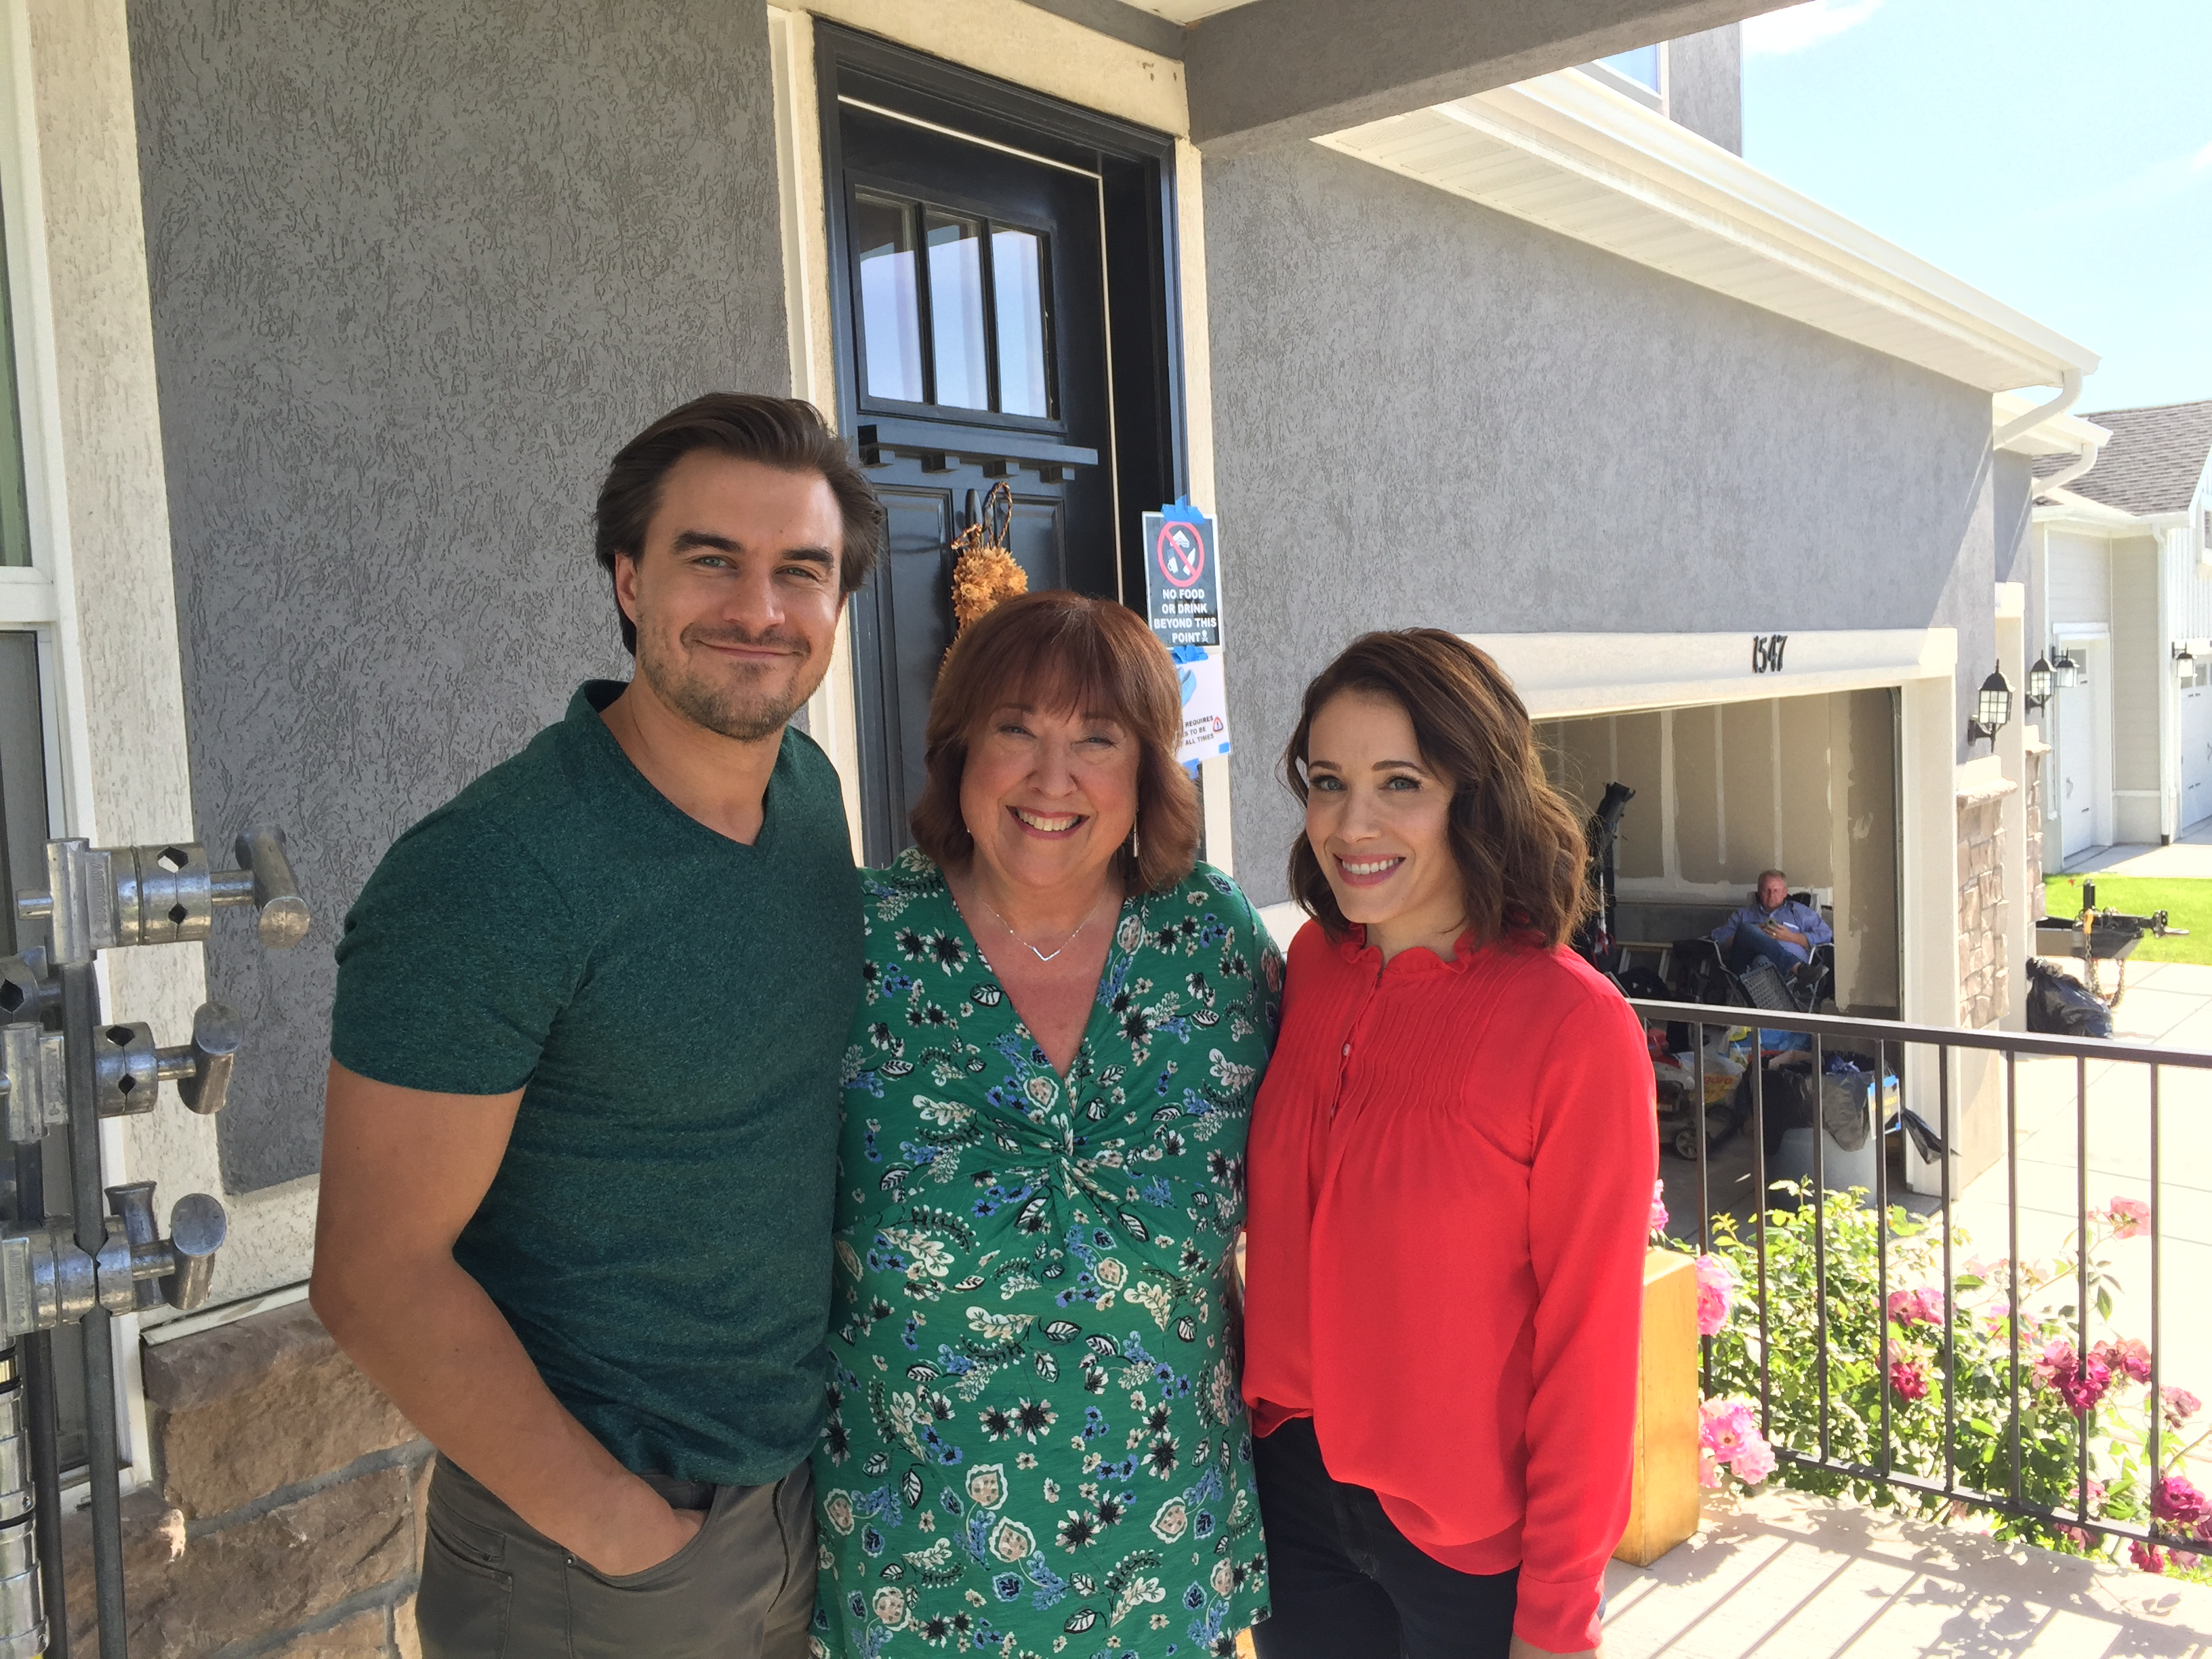 Marla Sokoloff, Melanie Haynes, and Rob Mayes in The Road Home for Christmas (2019)